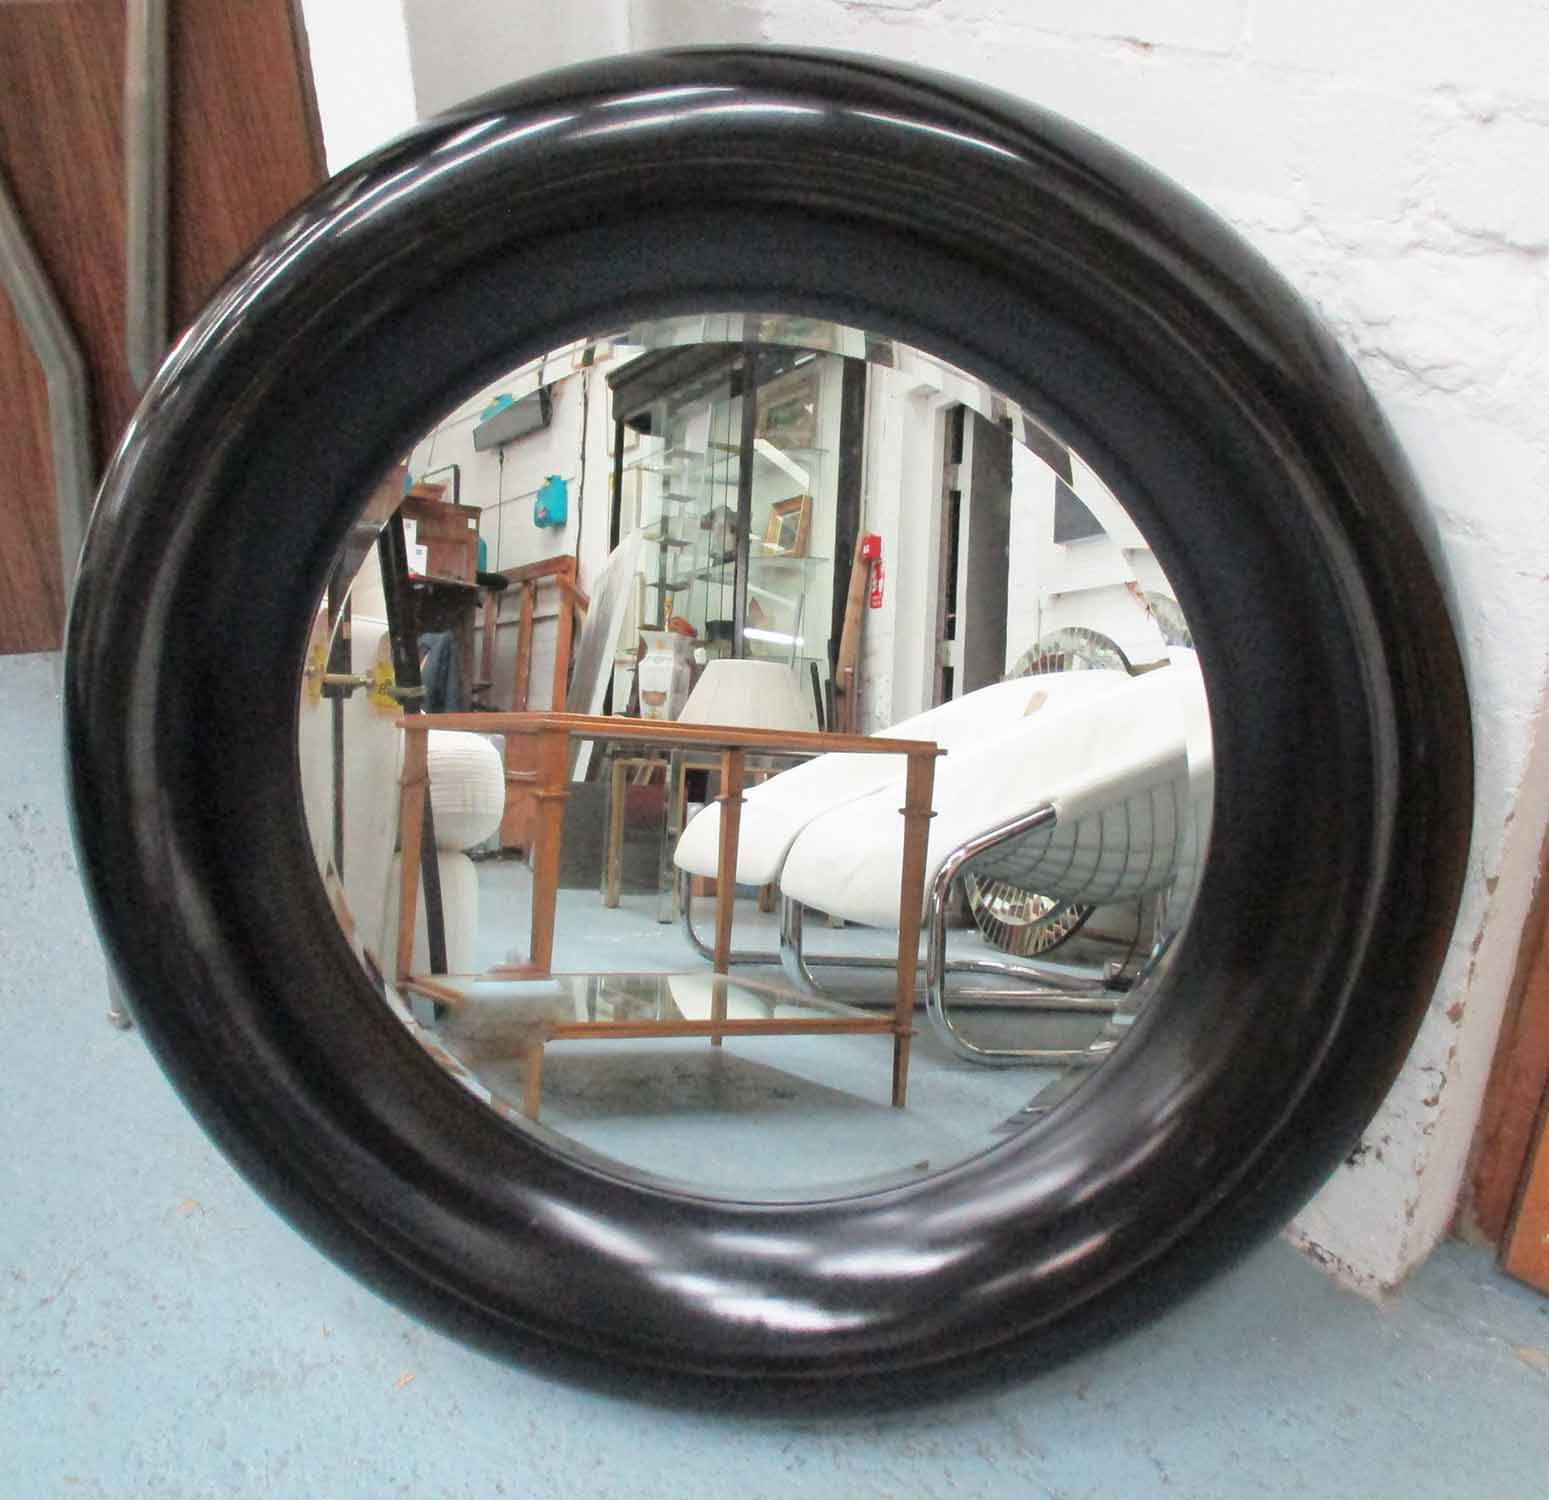 Lot 57 - INDIA JANE WALL MIRROR, colonial inspired design, 85cm Diam.